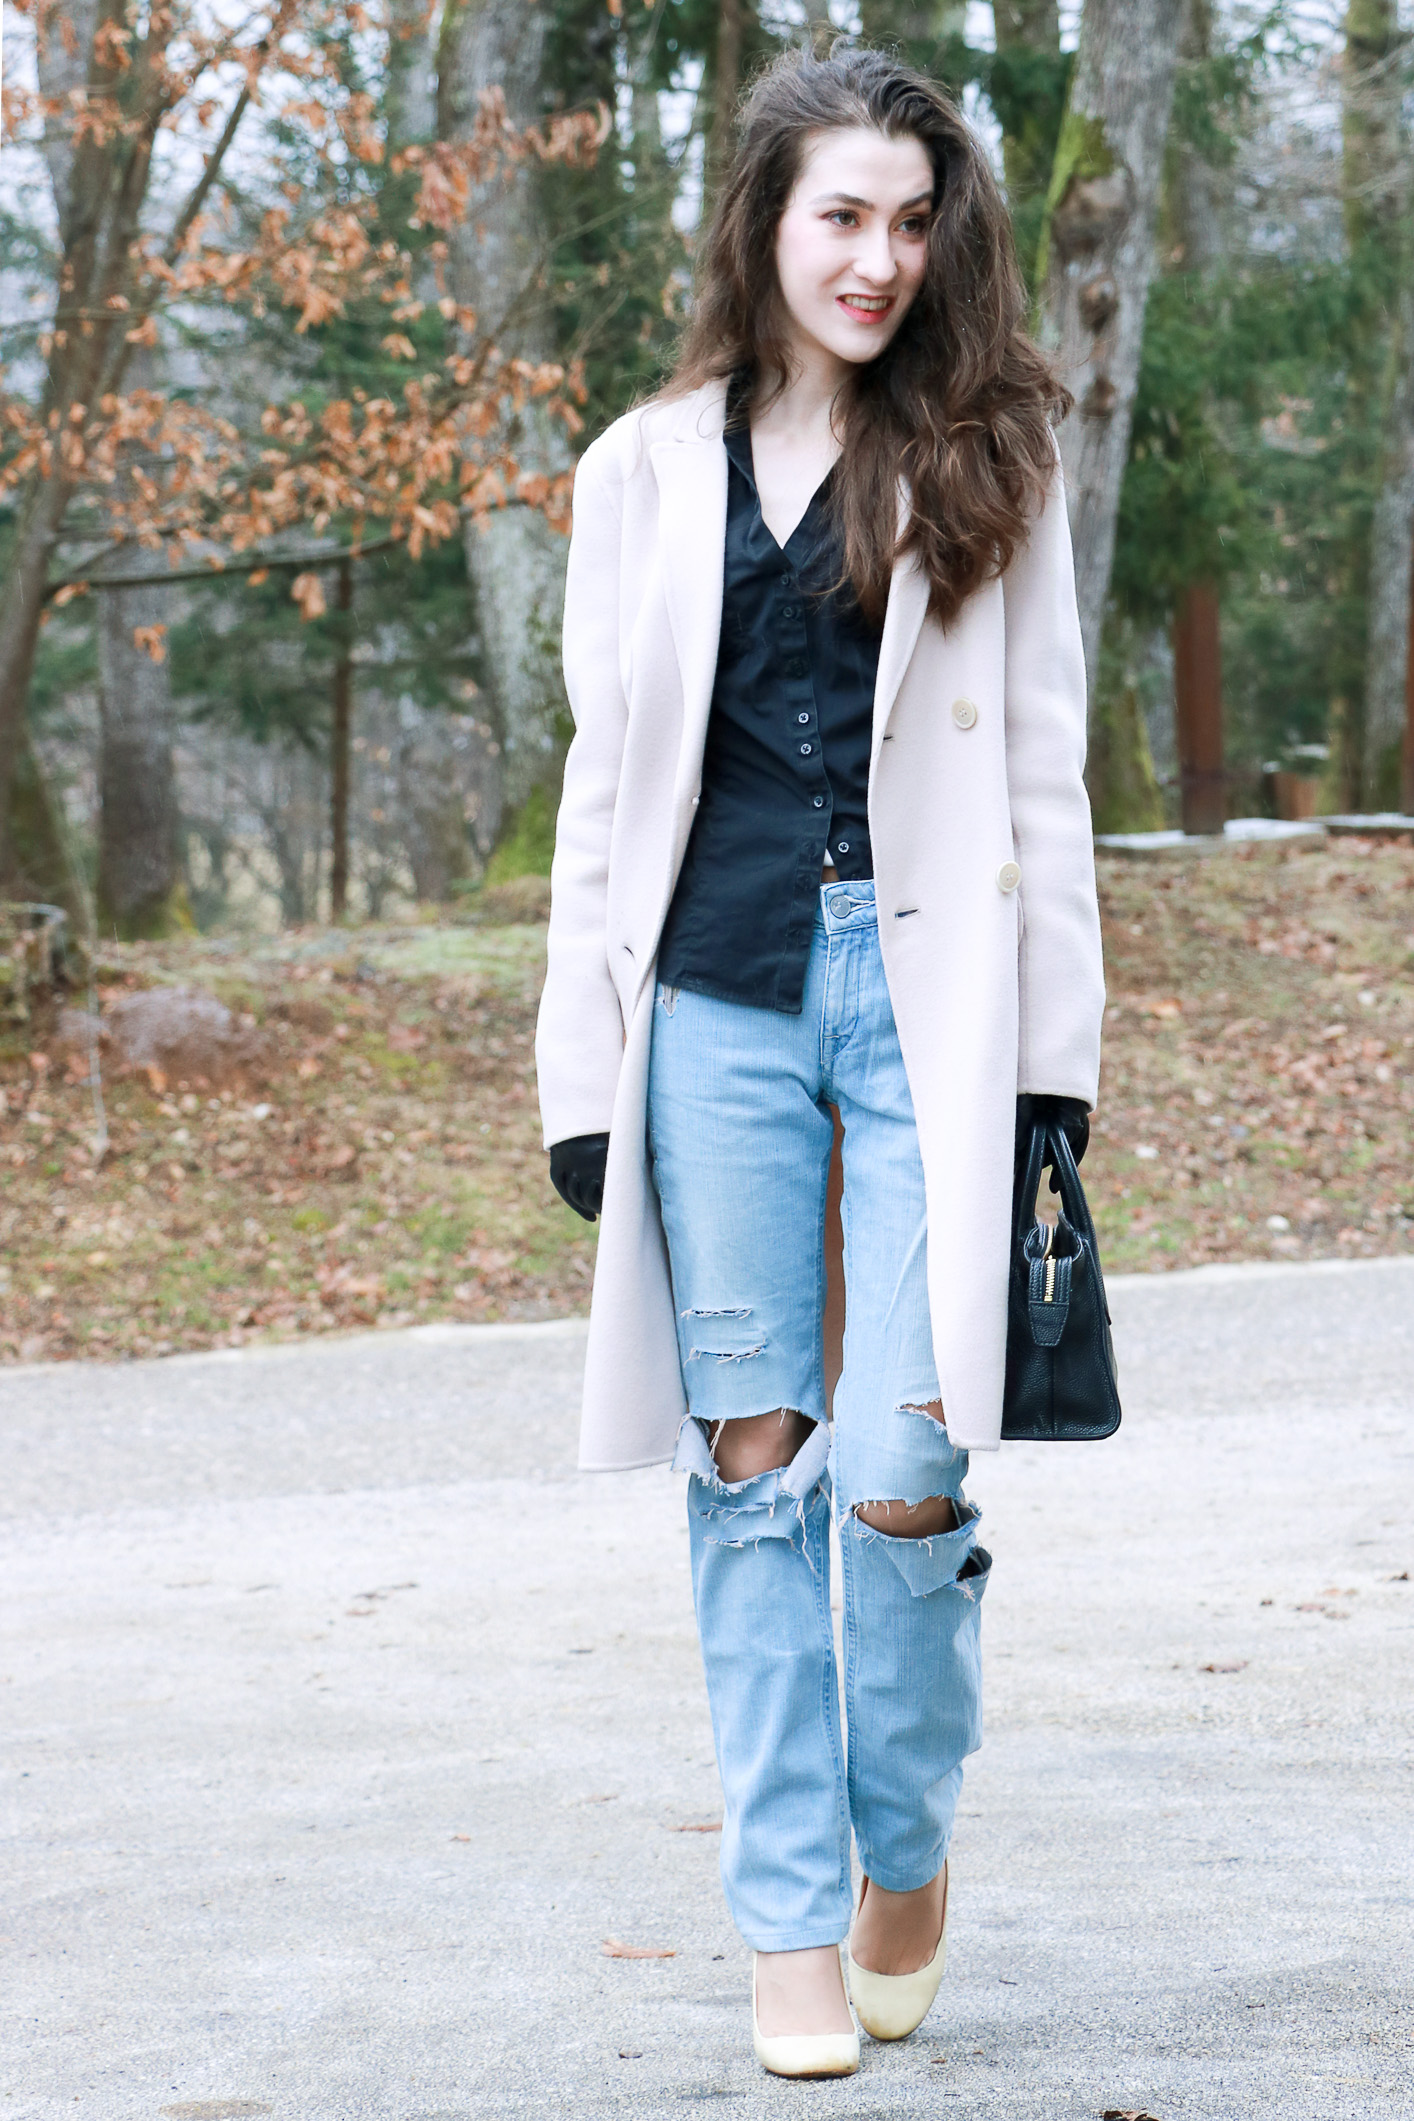 Fashion blogger Veronika Lipar of Brunette From Wall Street sharing how to style blue ripped jeans for a chic Friday Look